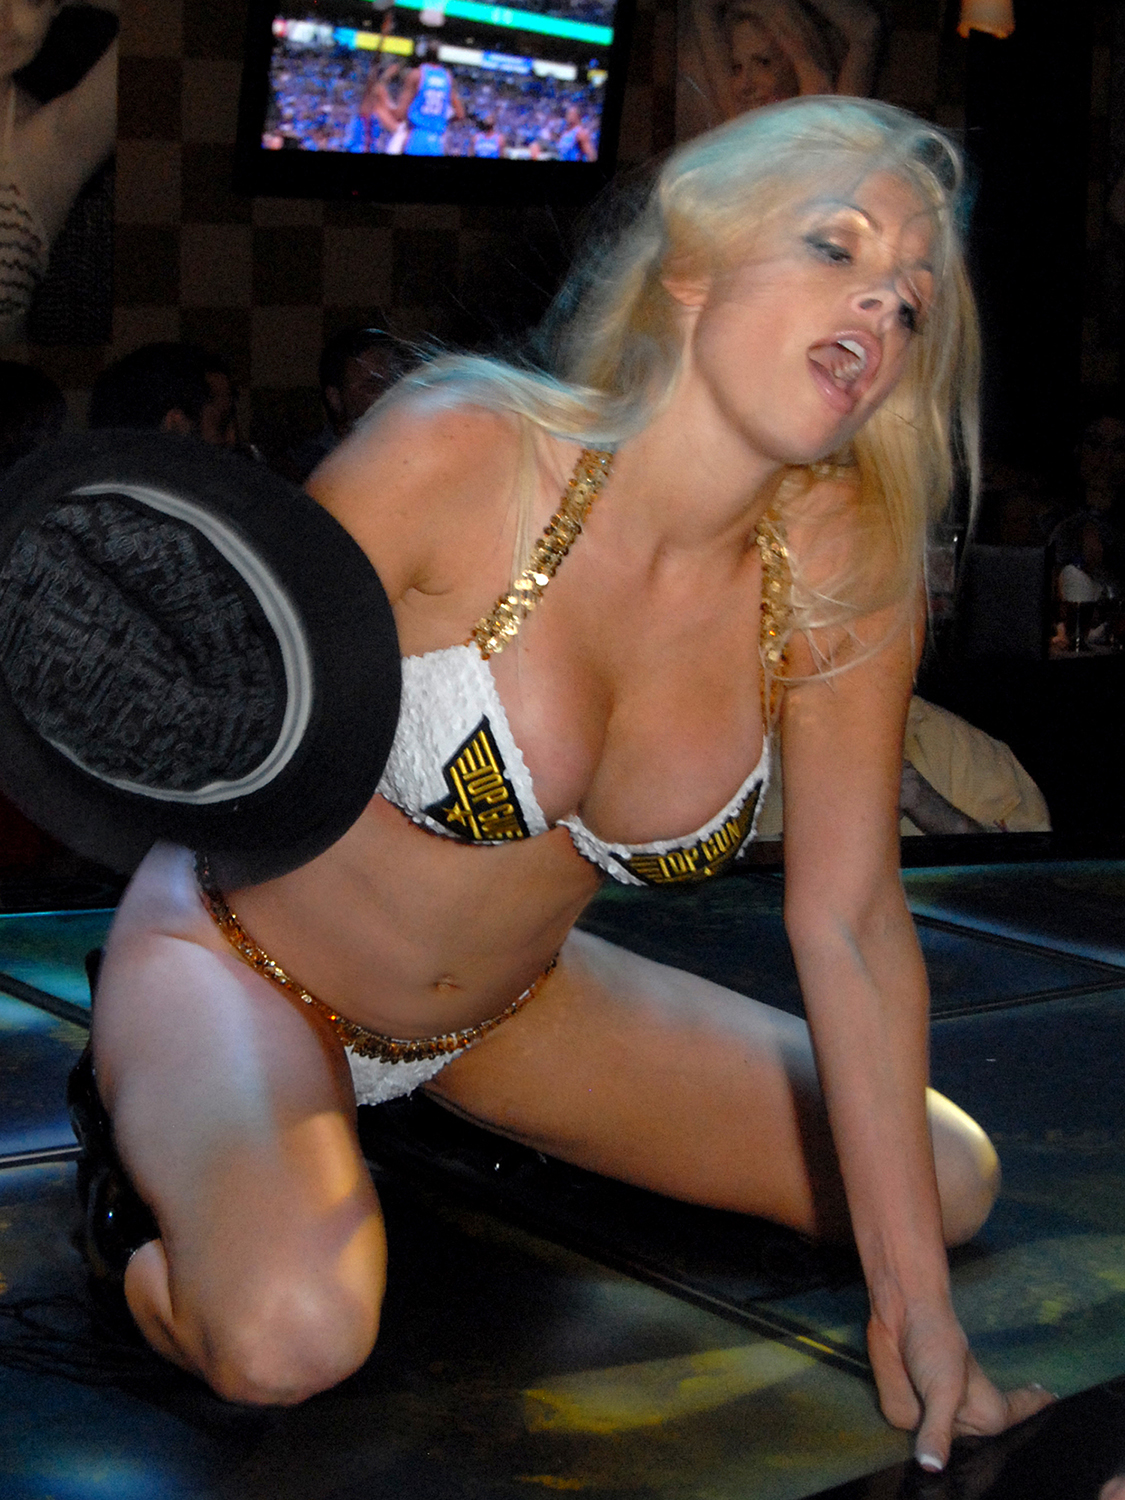 Jesse jane cheerleader